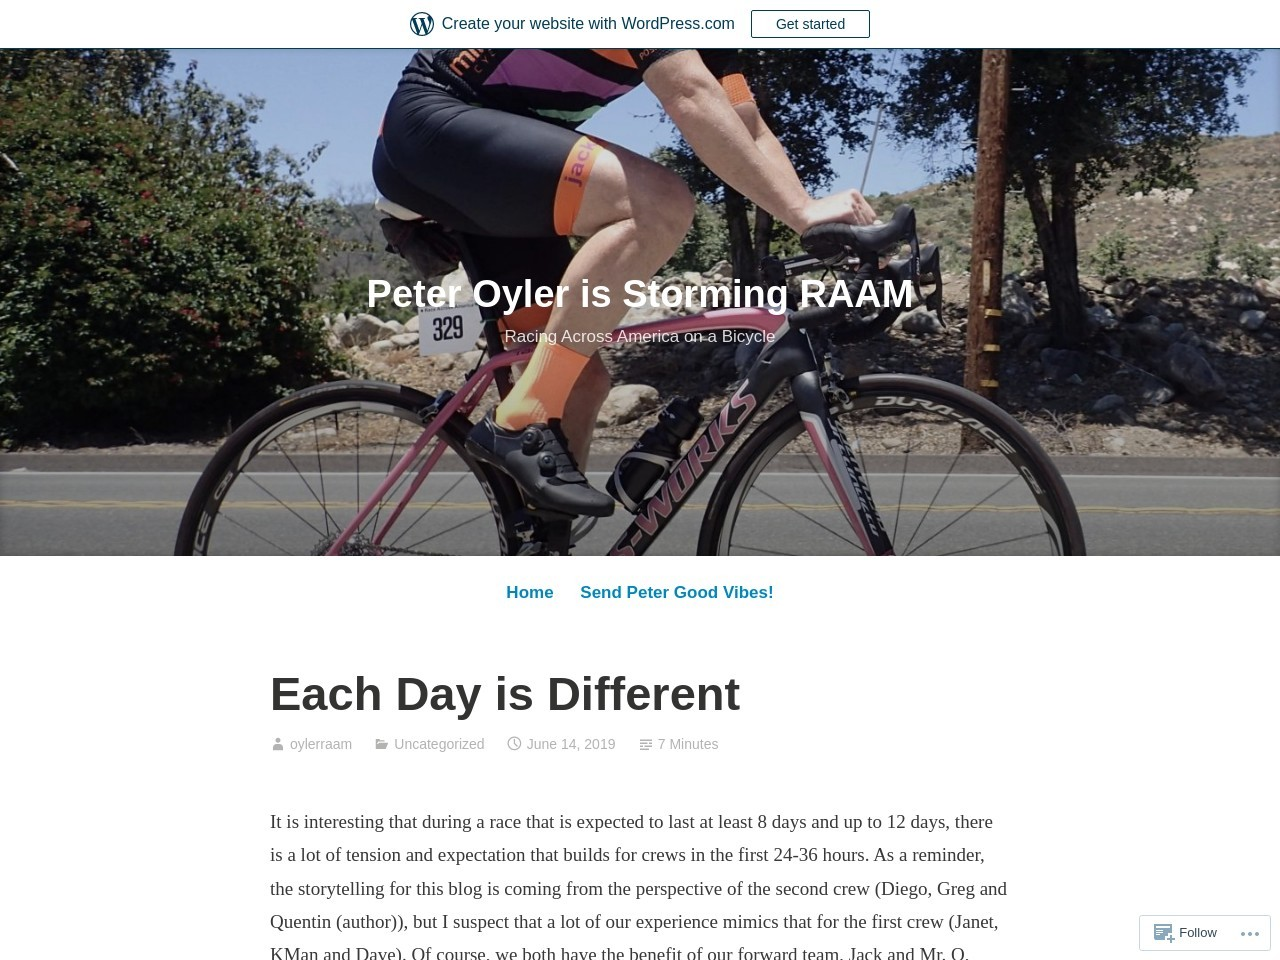 Each Day is Different – Peter Oyler is Storming RAAM